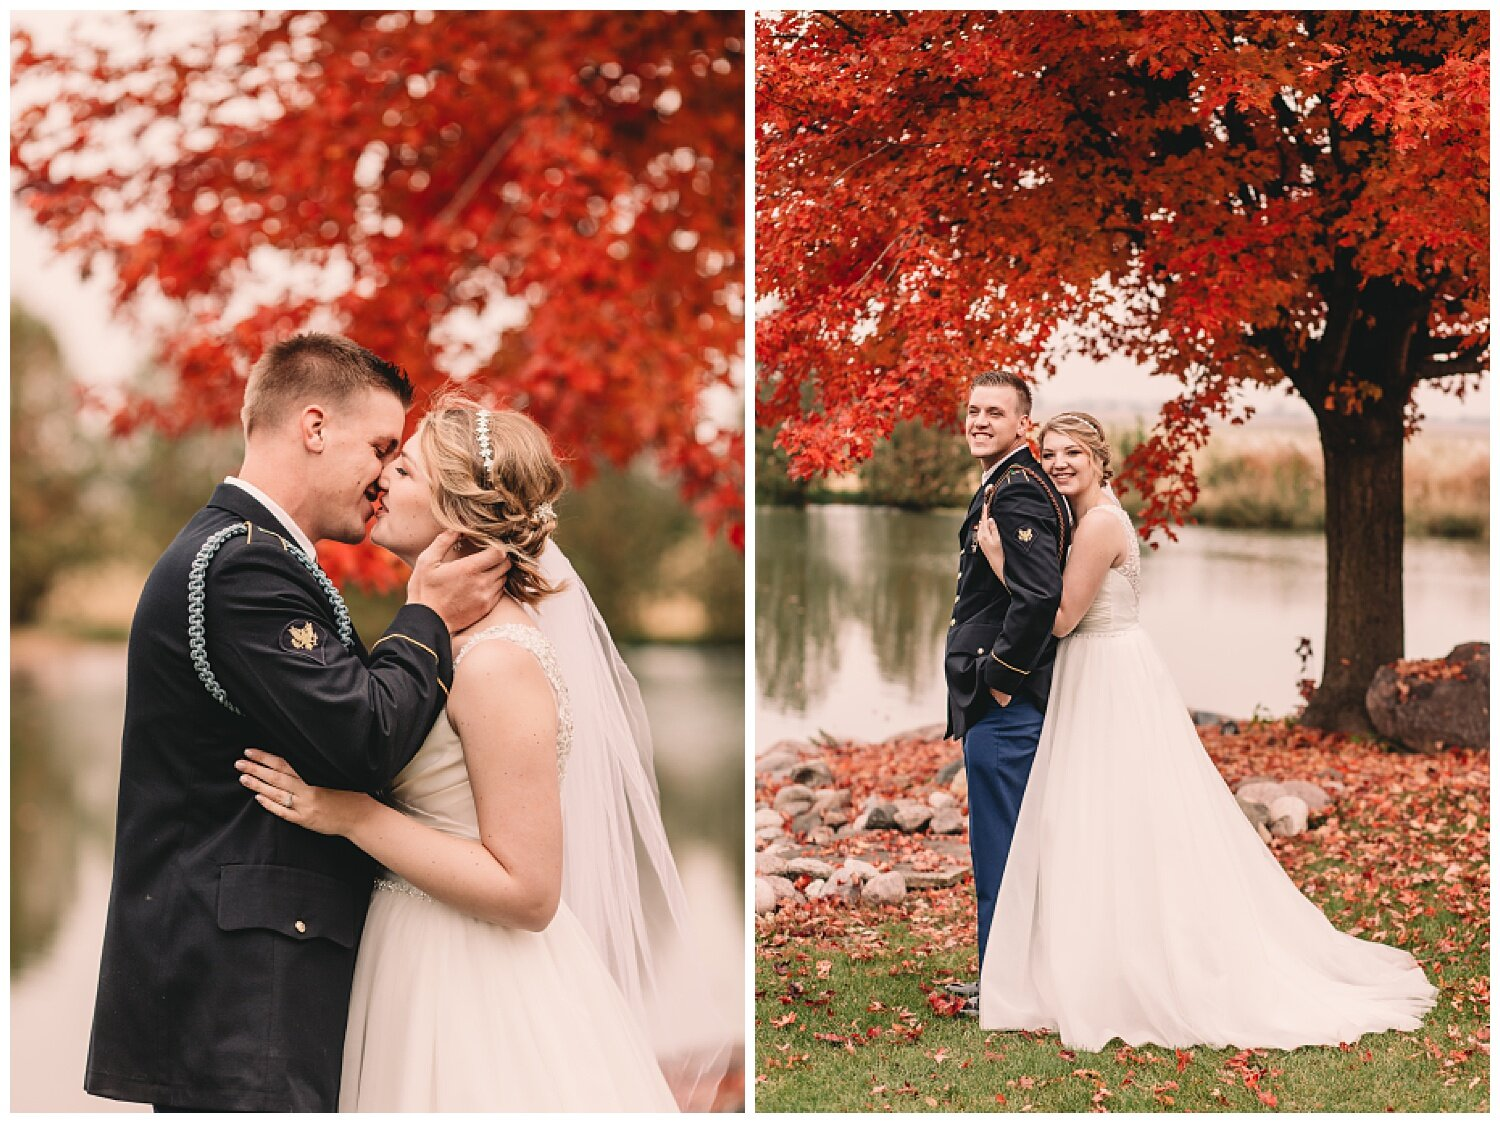 This tree was the most perfect backdrop for an October wedding!